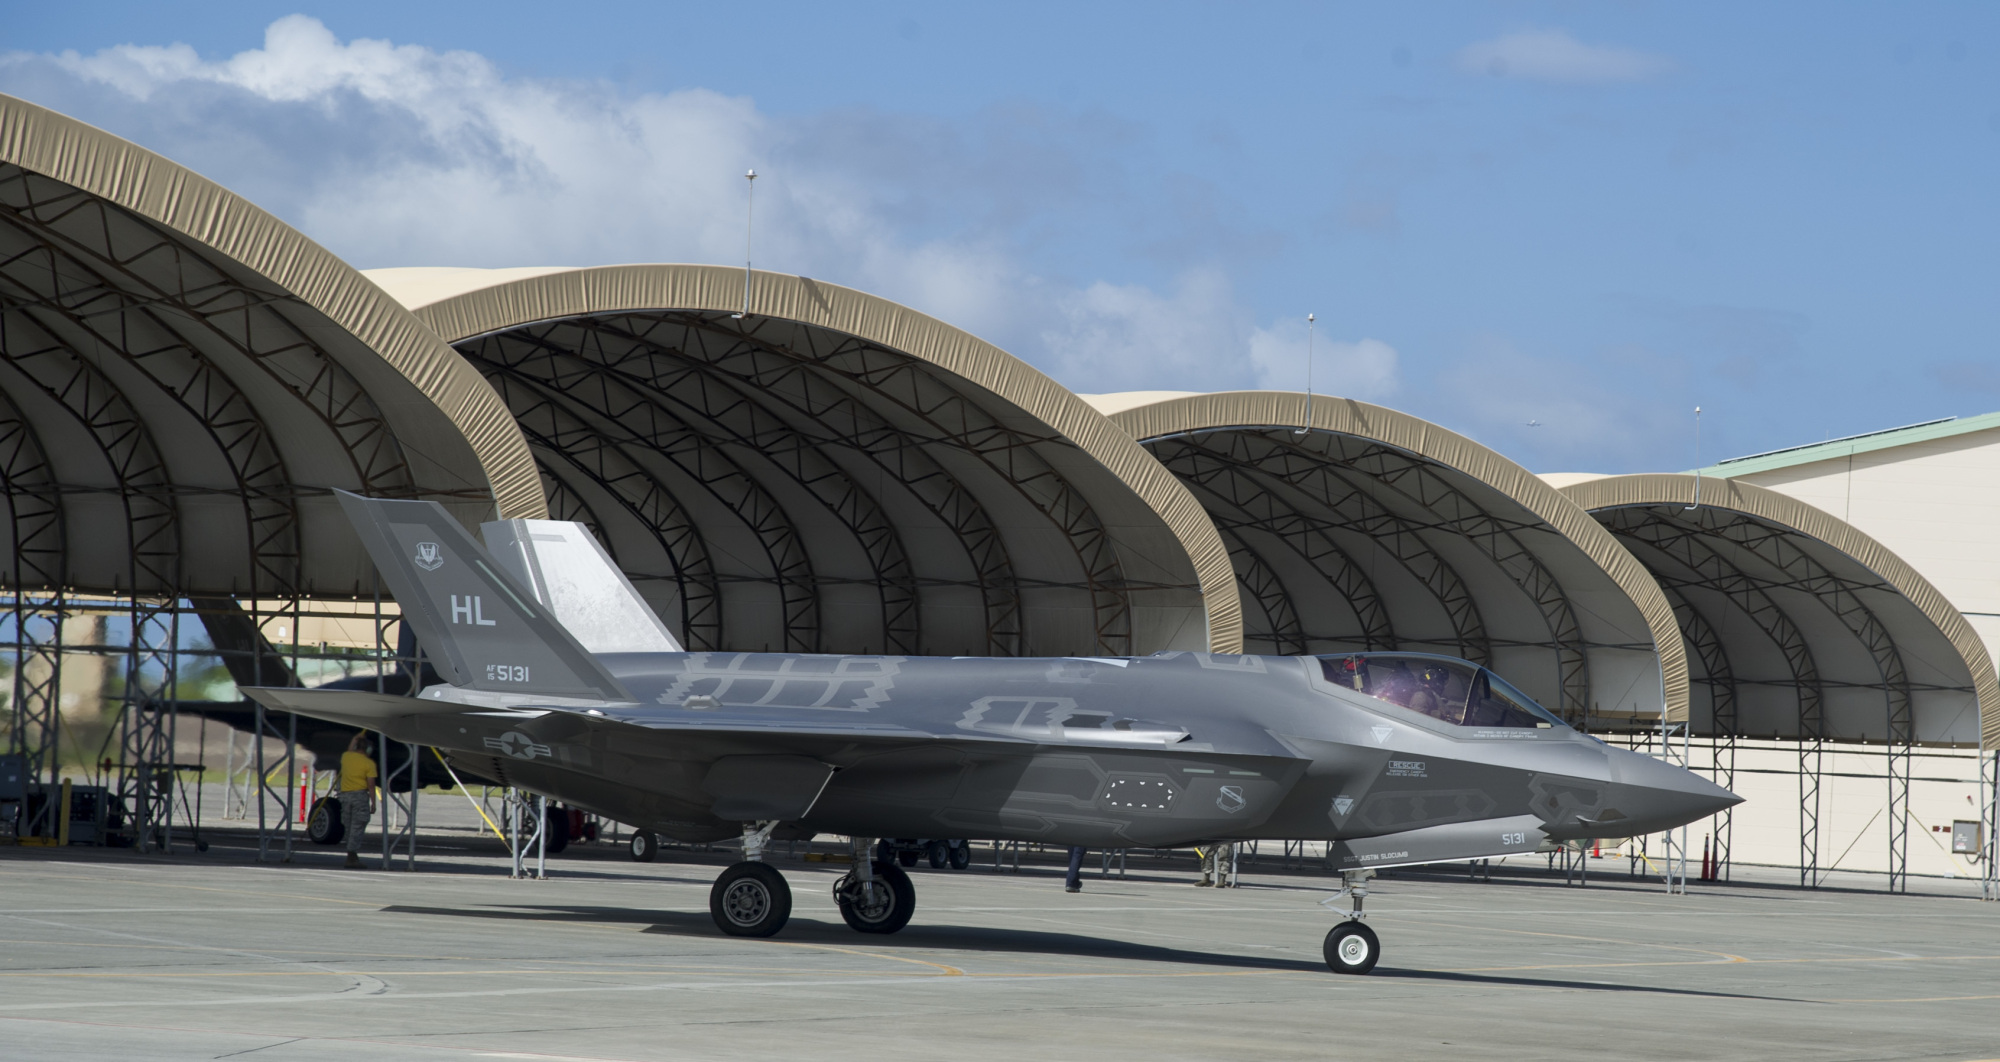 A U.S. Air Force F-35 stealth fighter jet taxis for takeoff at Joint Base Pearl Harbor-Hickam, Hawaii, on Oct. 13. | 15TH WING PUBLIC AFFAIRS